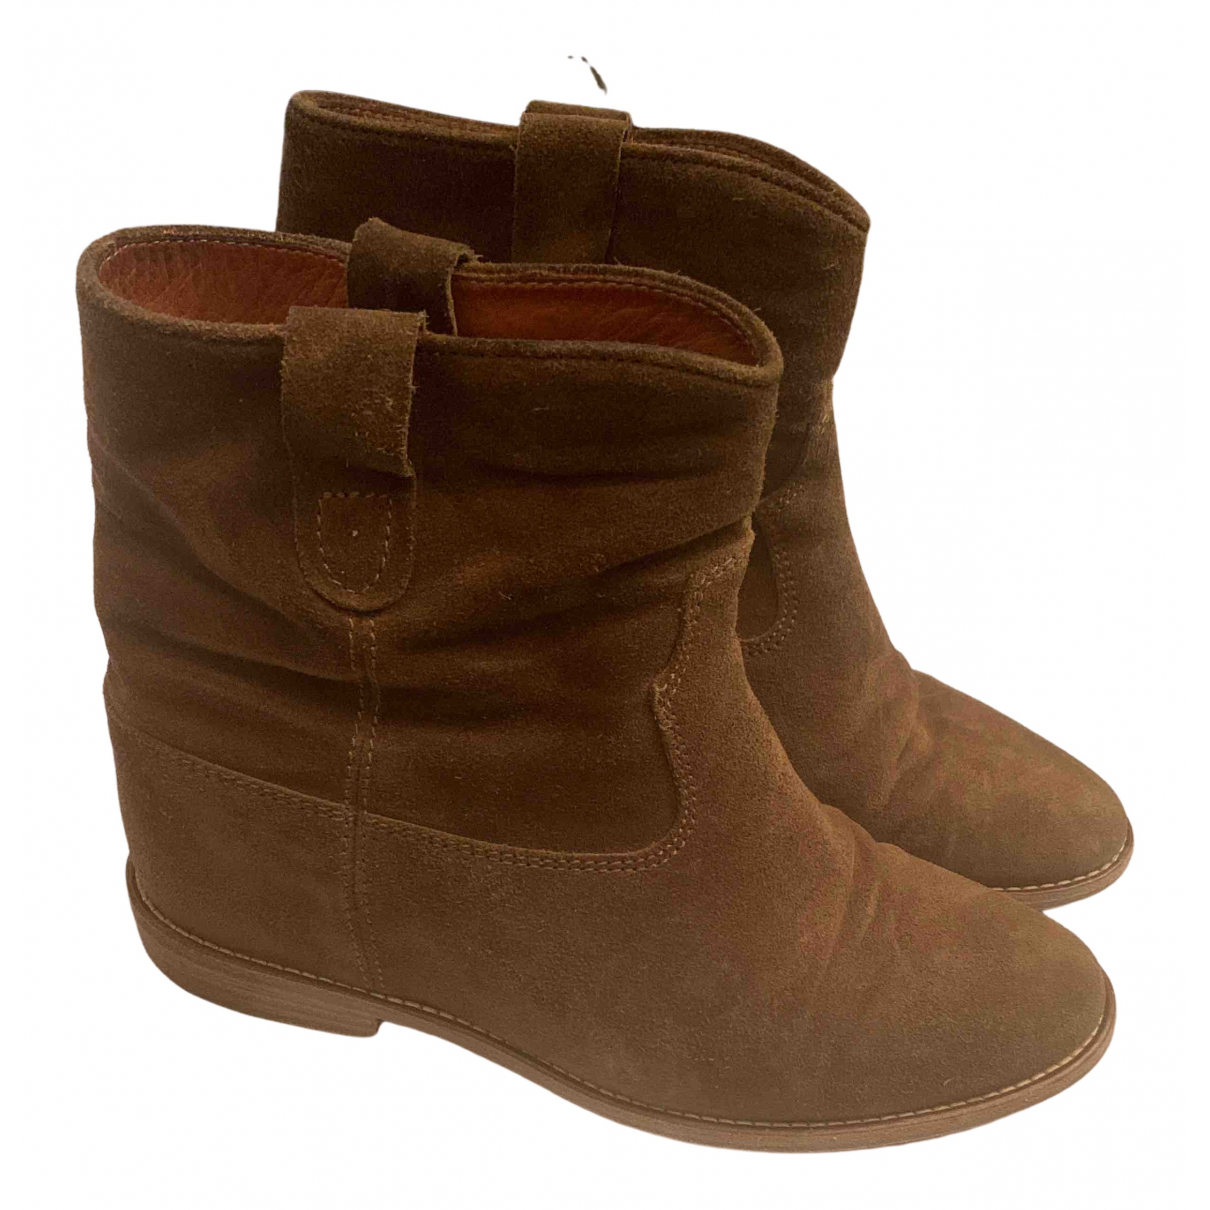 Isabel Marant N Camel Suede Ankle boots for Women 38 EU